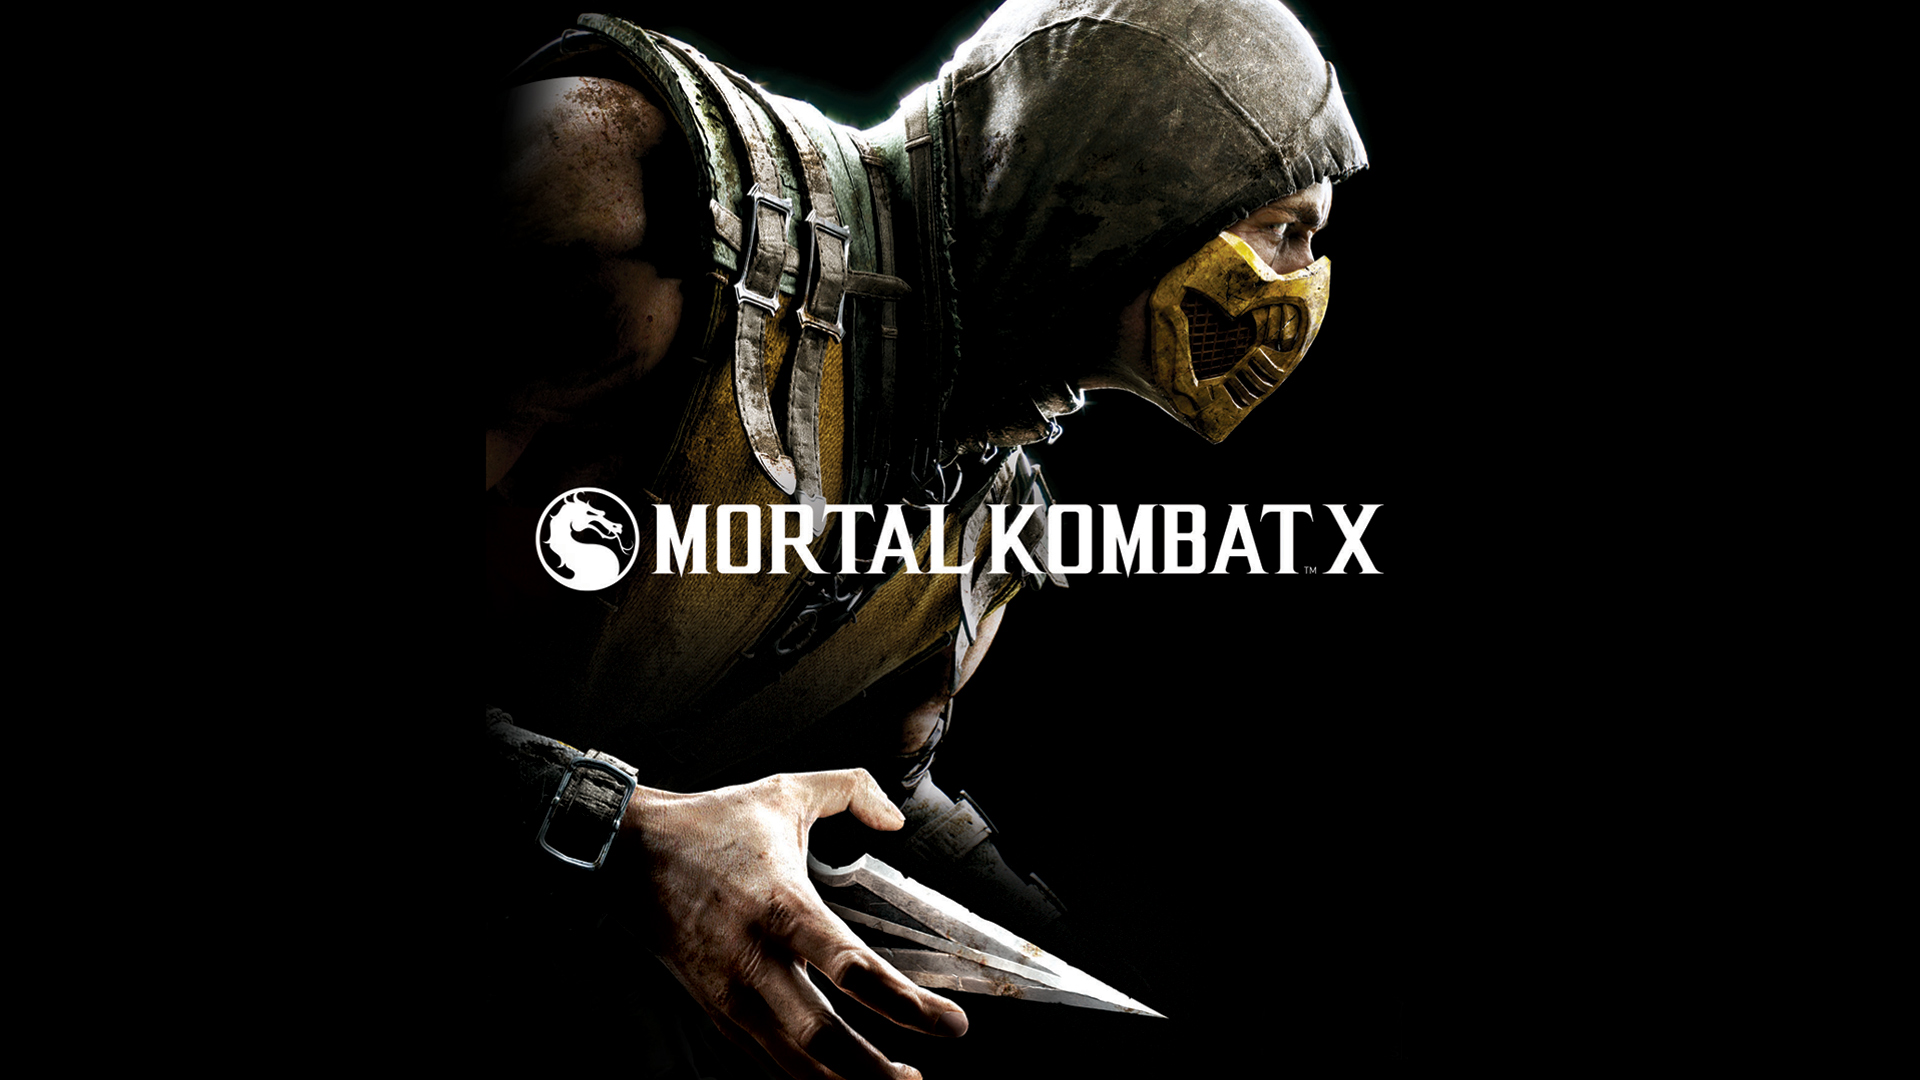 Mortal kombat x scorpion wallpapers wallpapersafari - Mortal kombat scorpion wallpaper ...